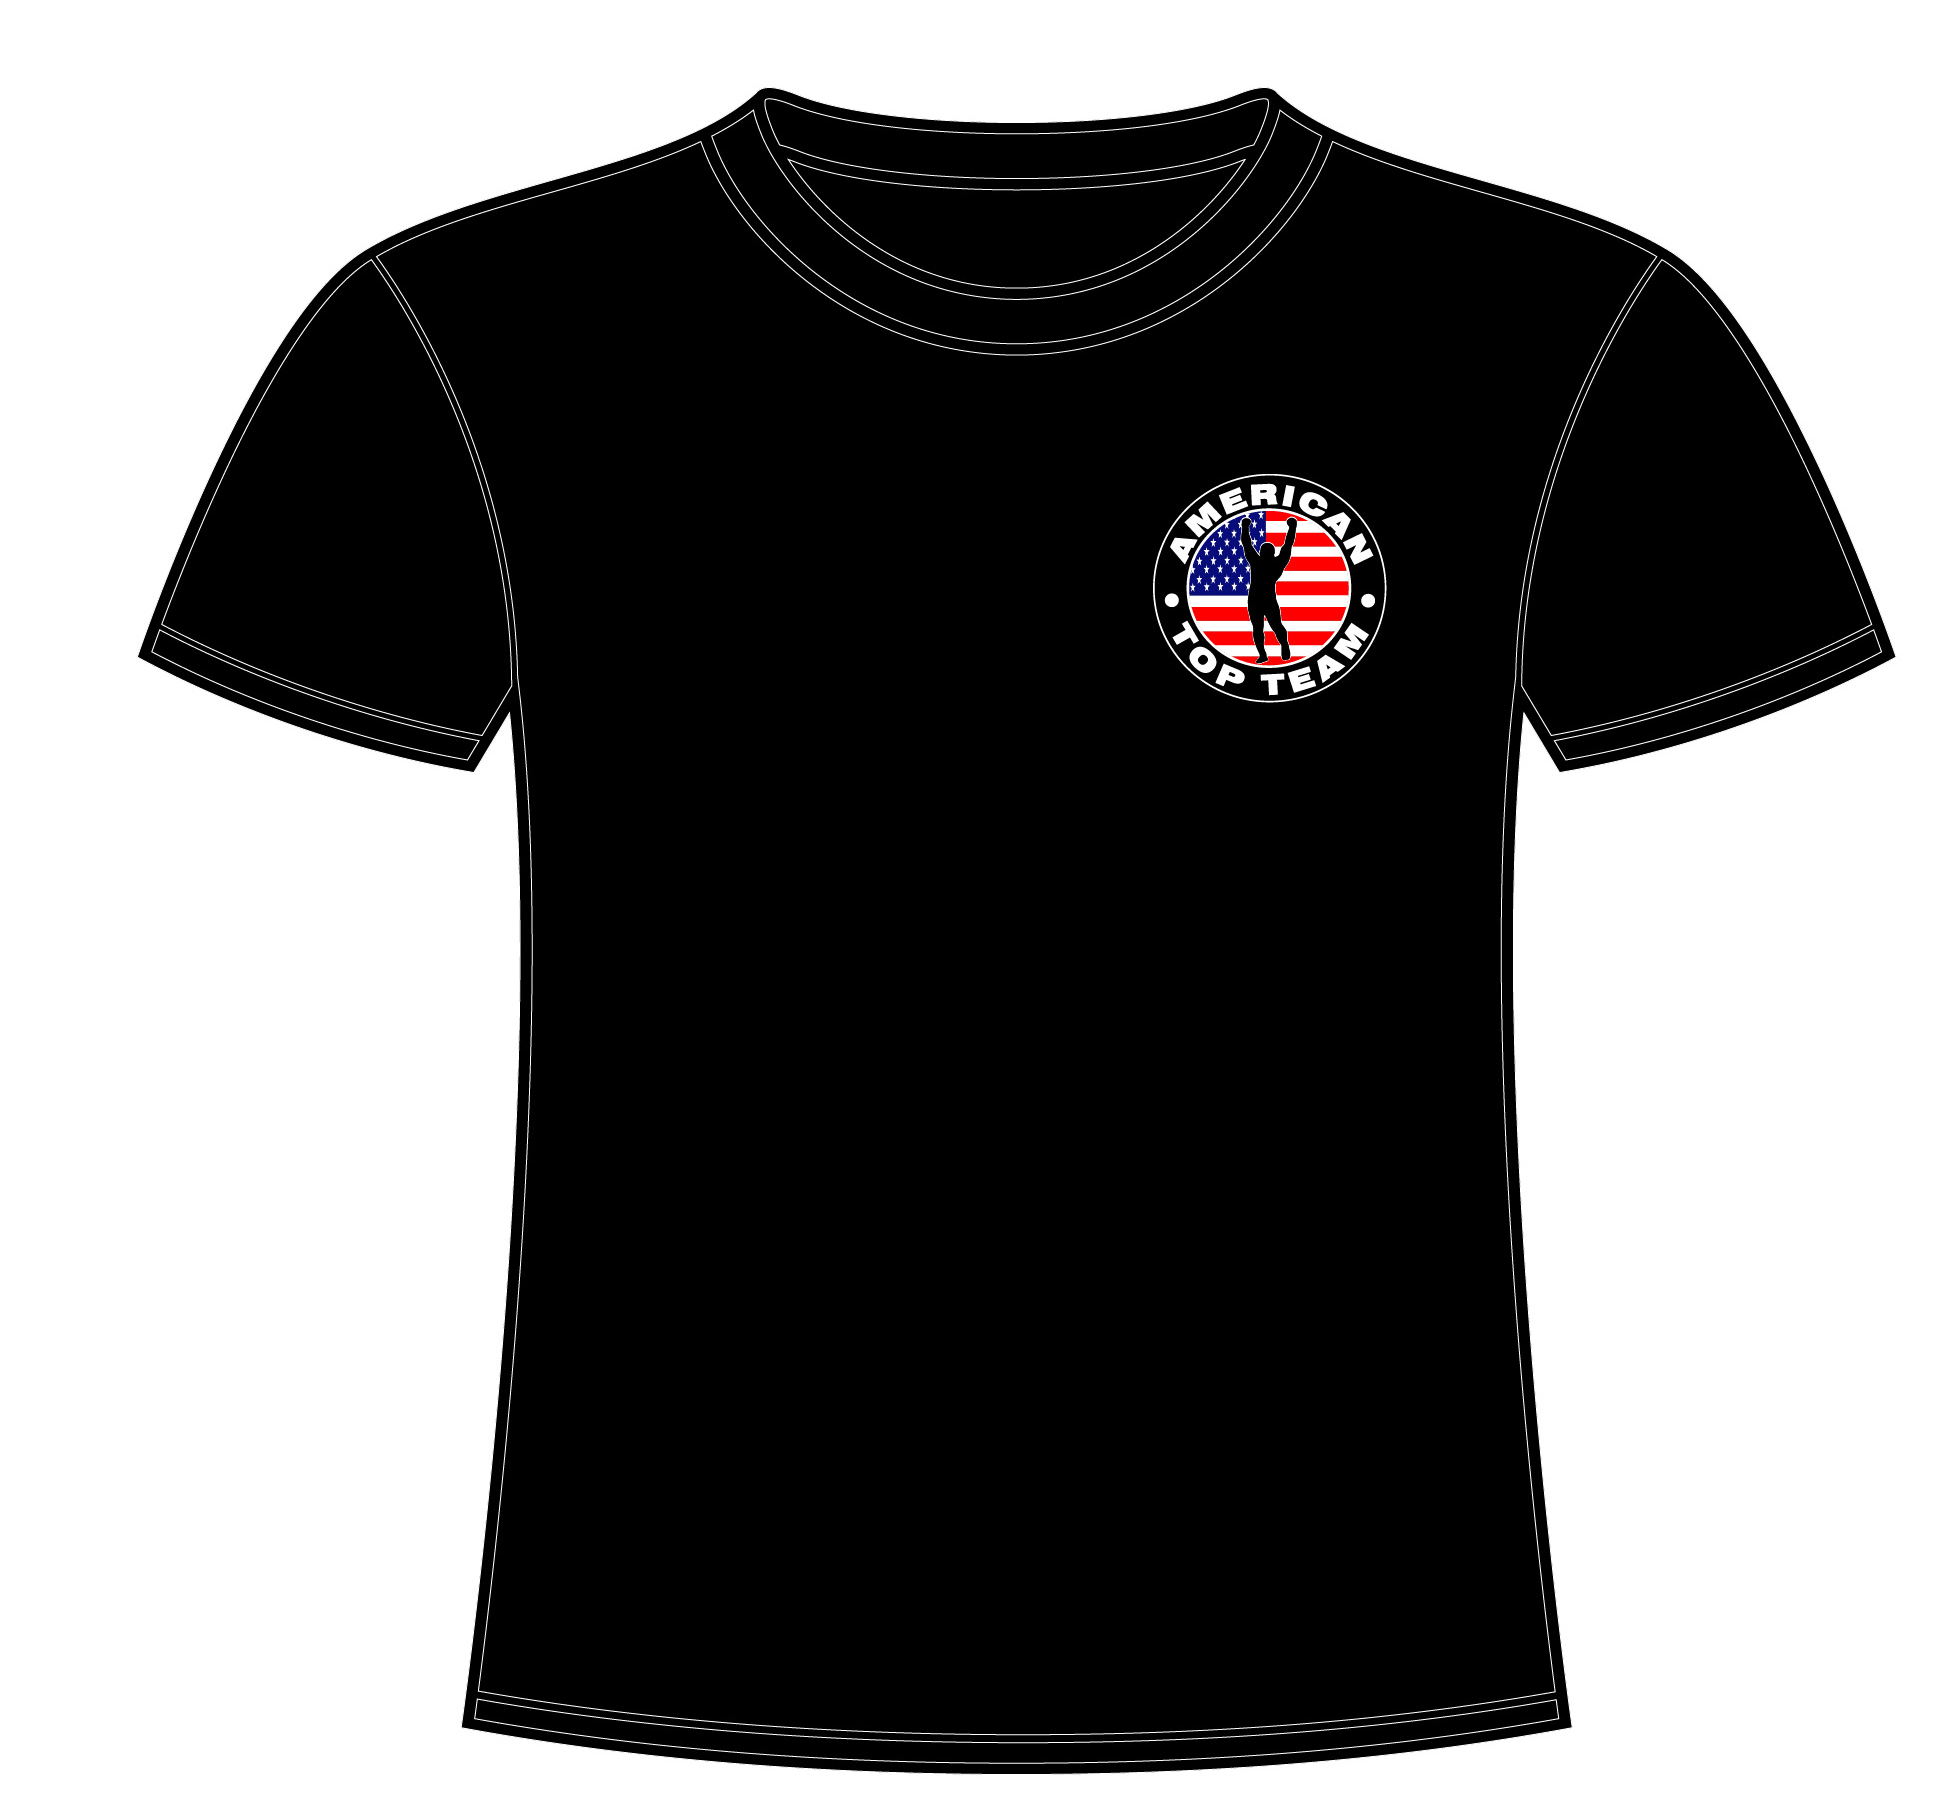 15d5490b8 Original Logo T-shirt Black - American Top Team